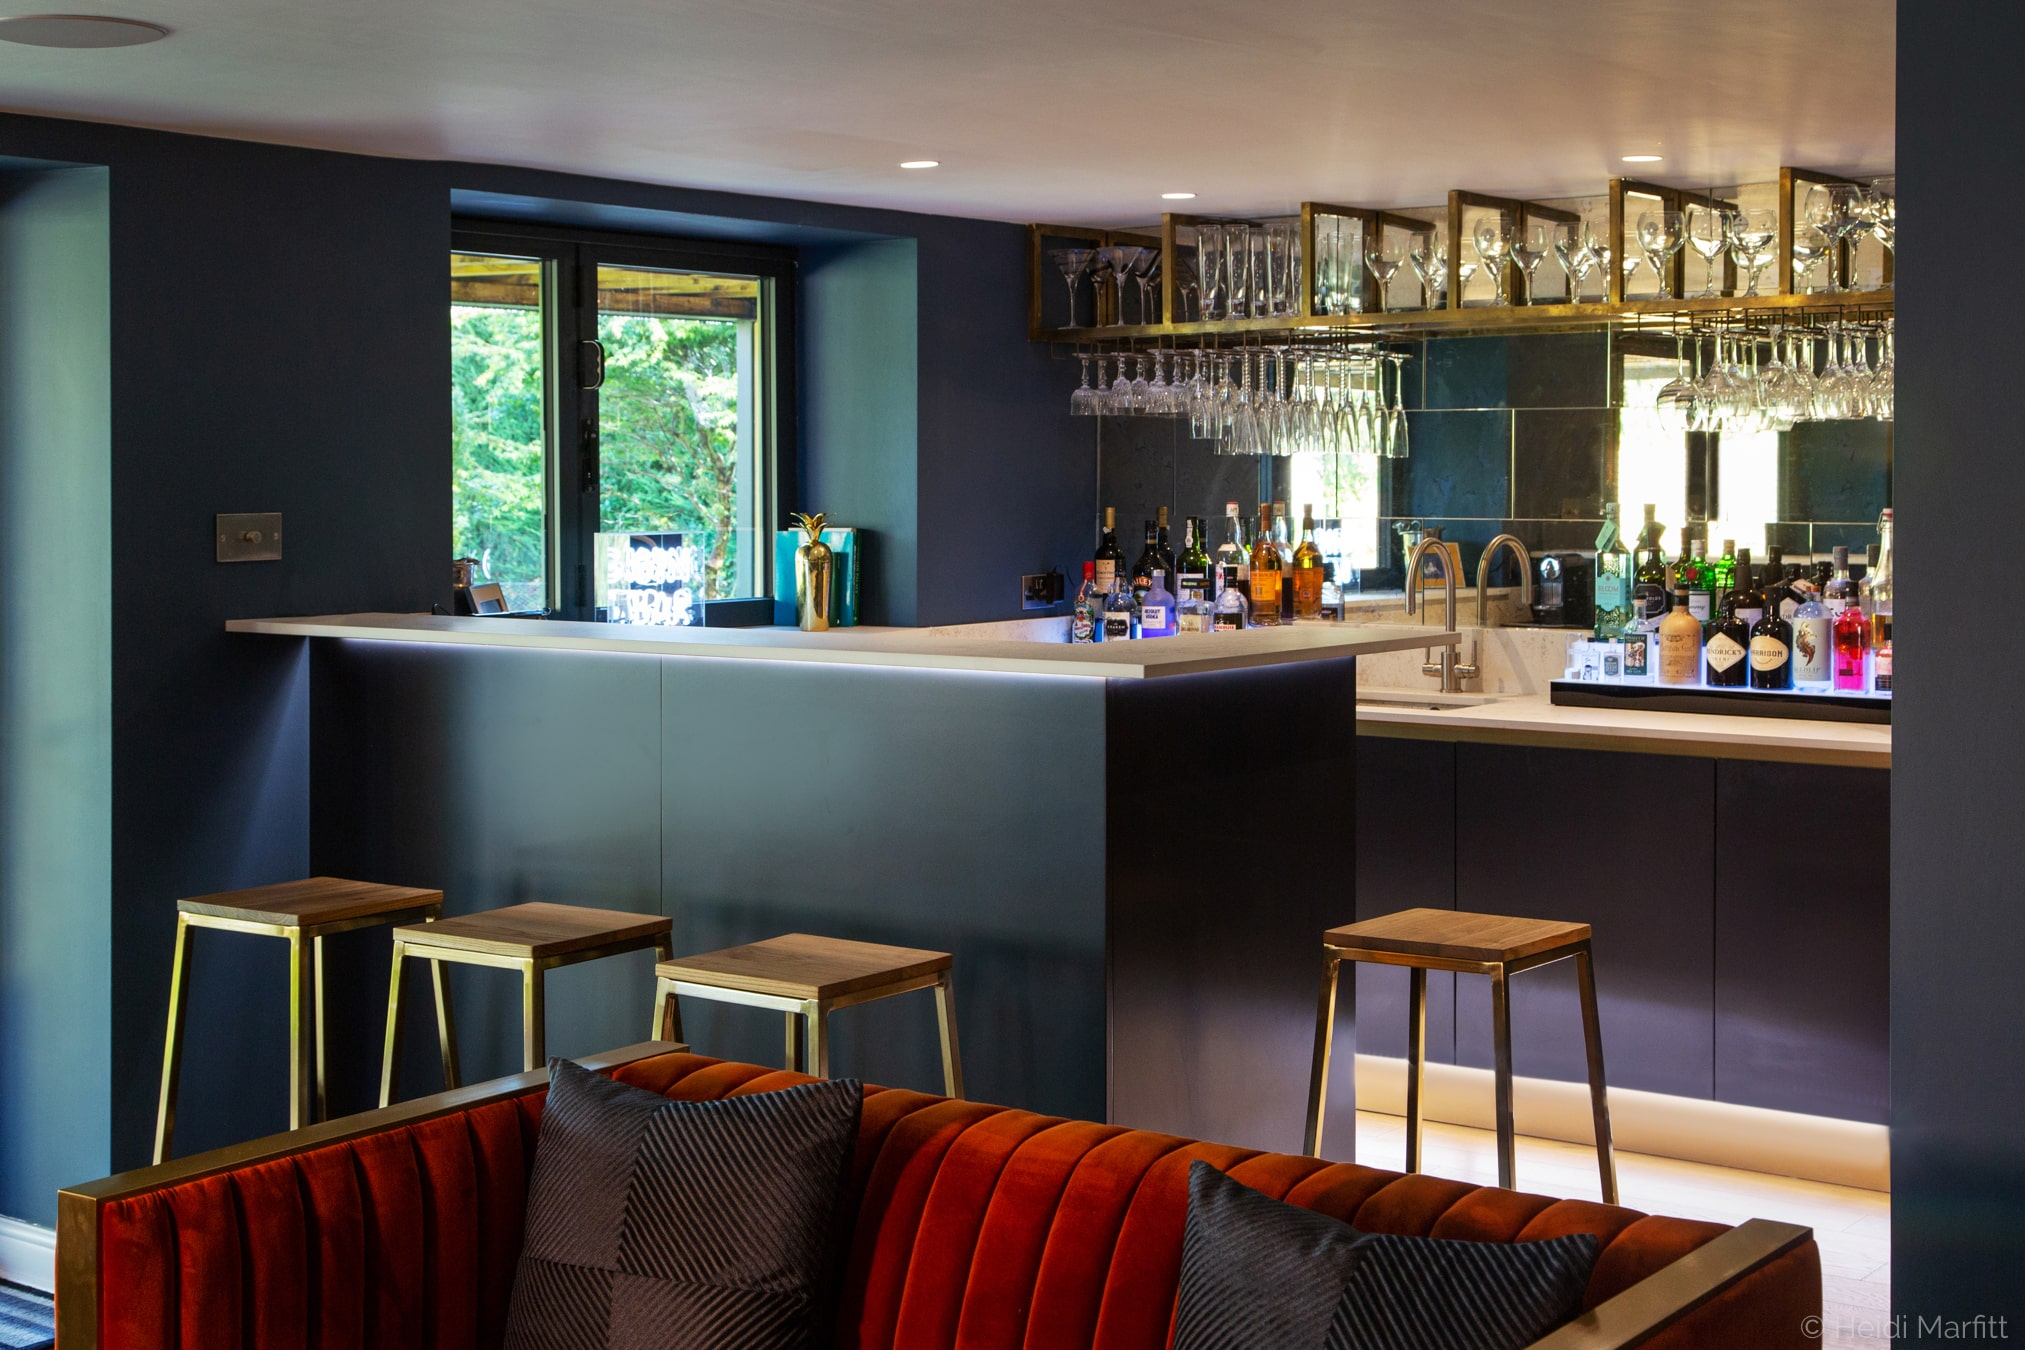 A bespoke bar means this basement is the perfect place to celebrate in style